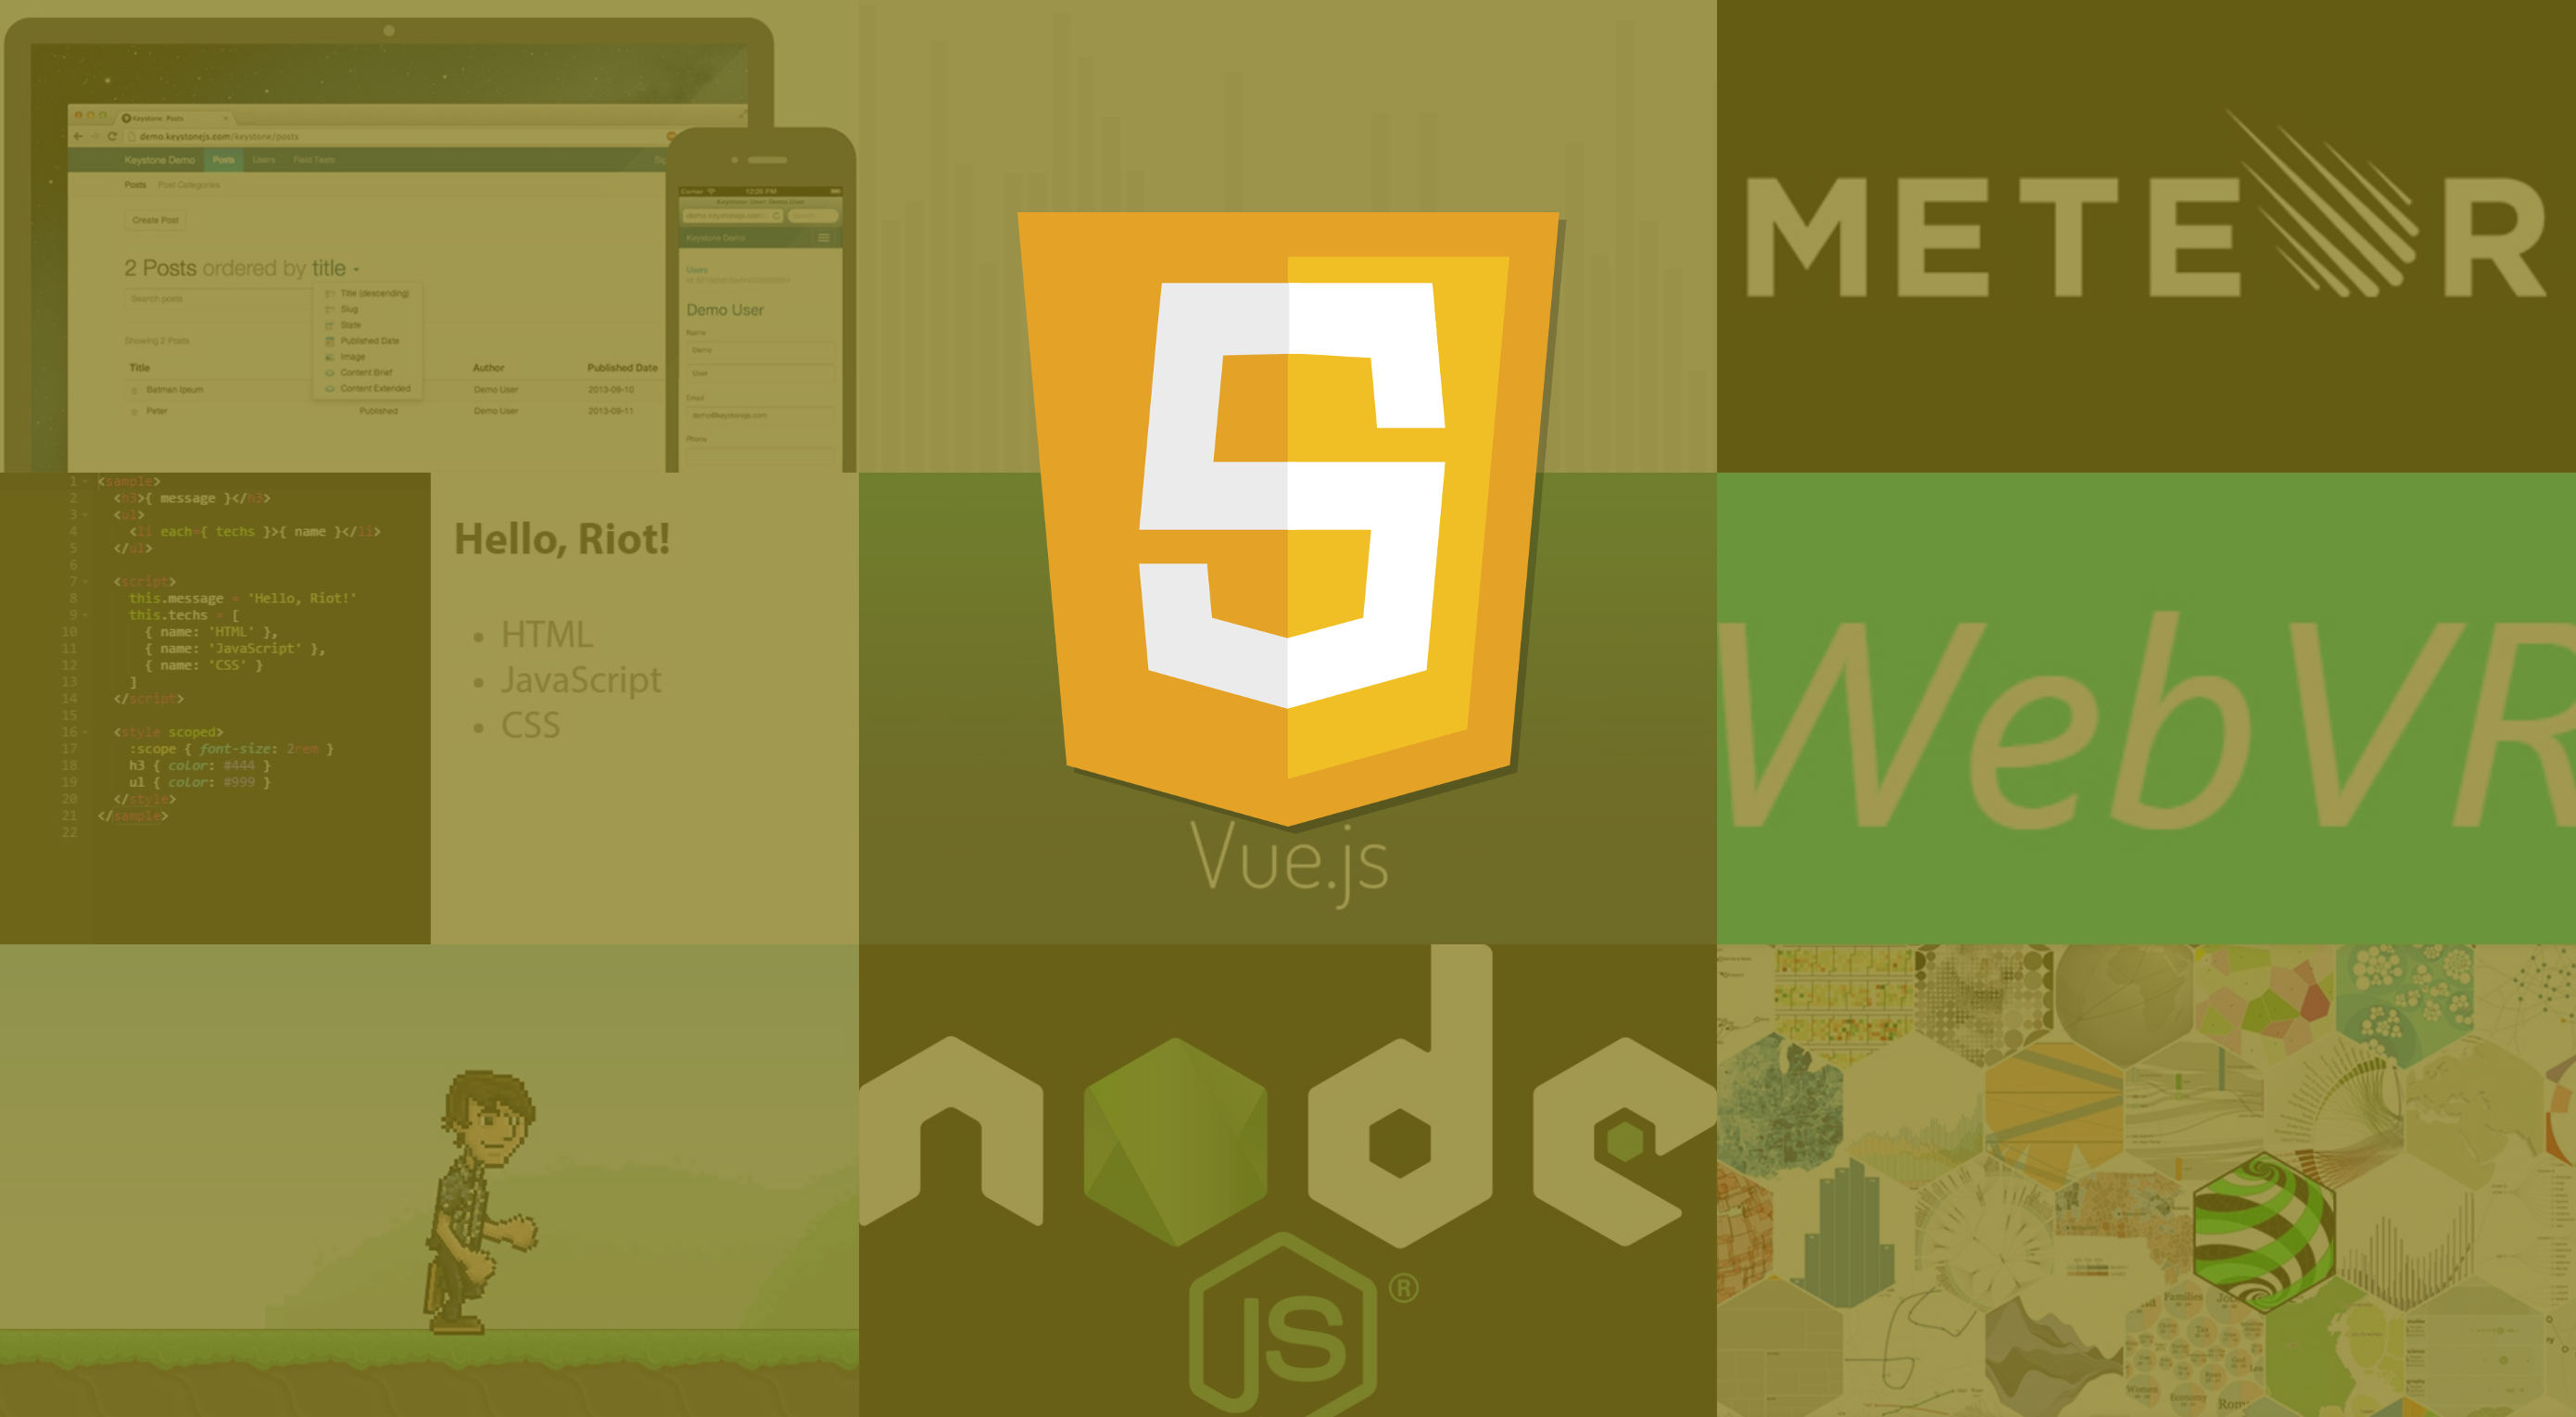 12 JavaScript libraries to watch in 2017 | Webdesigner Depot